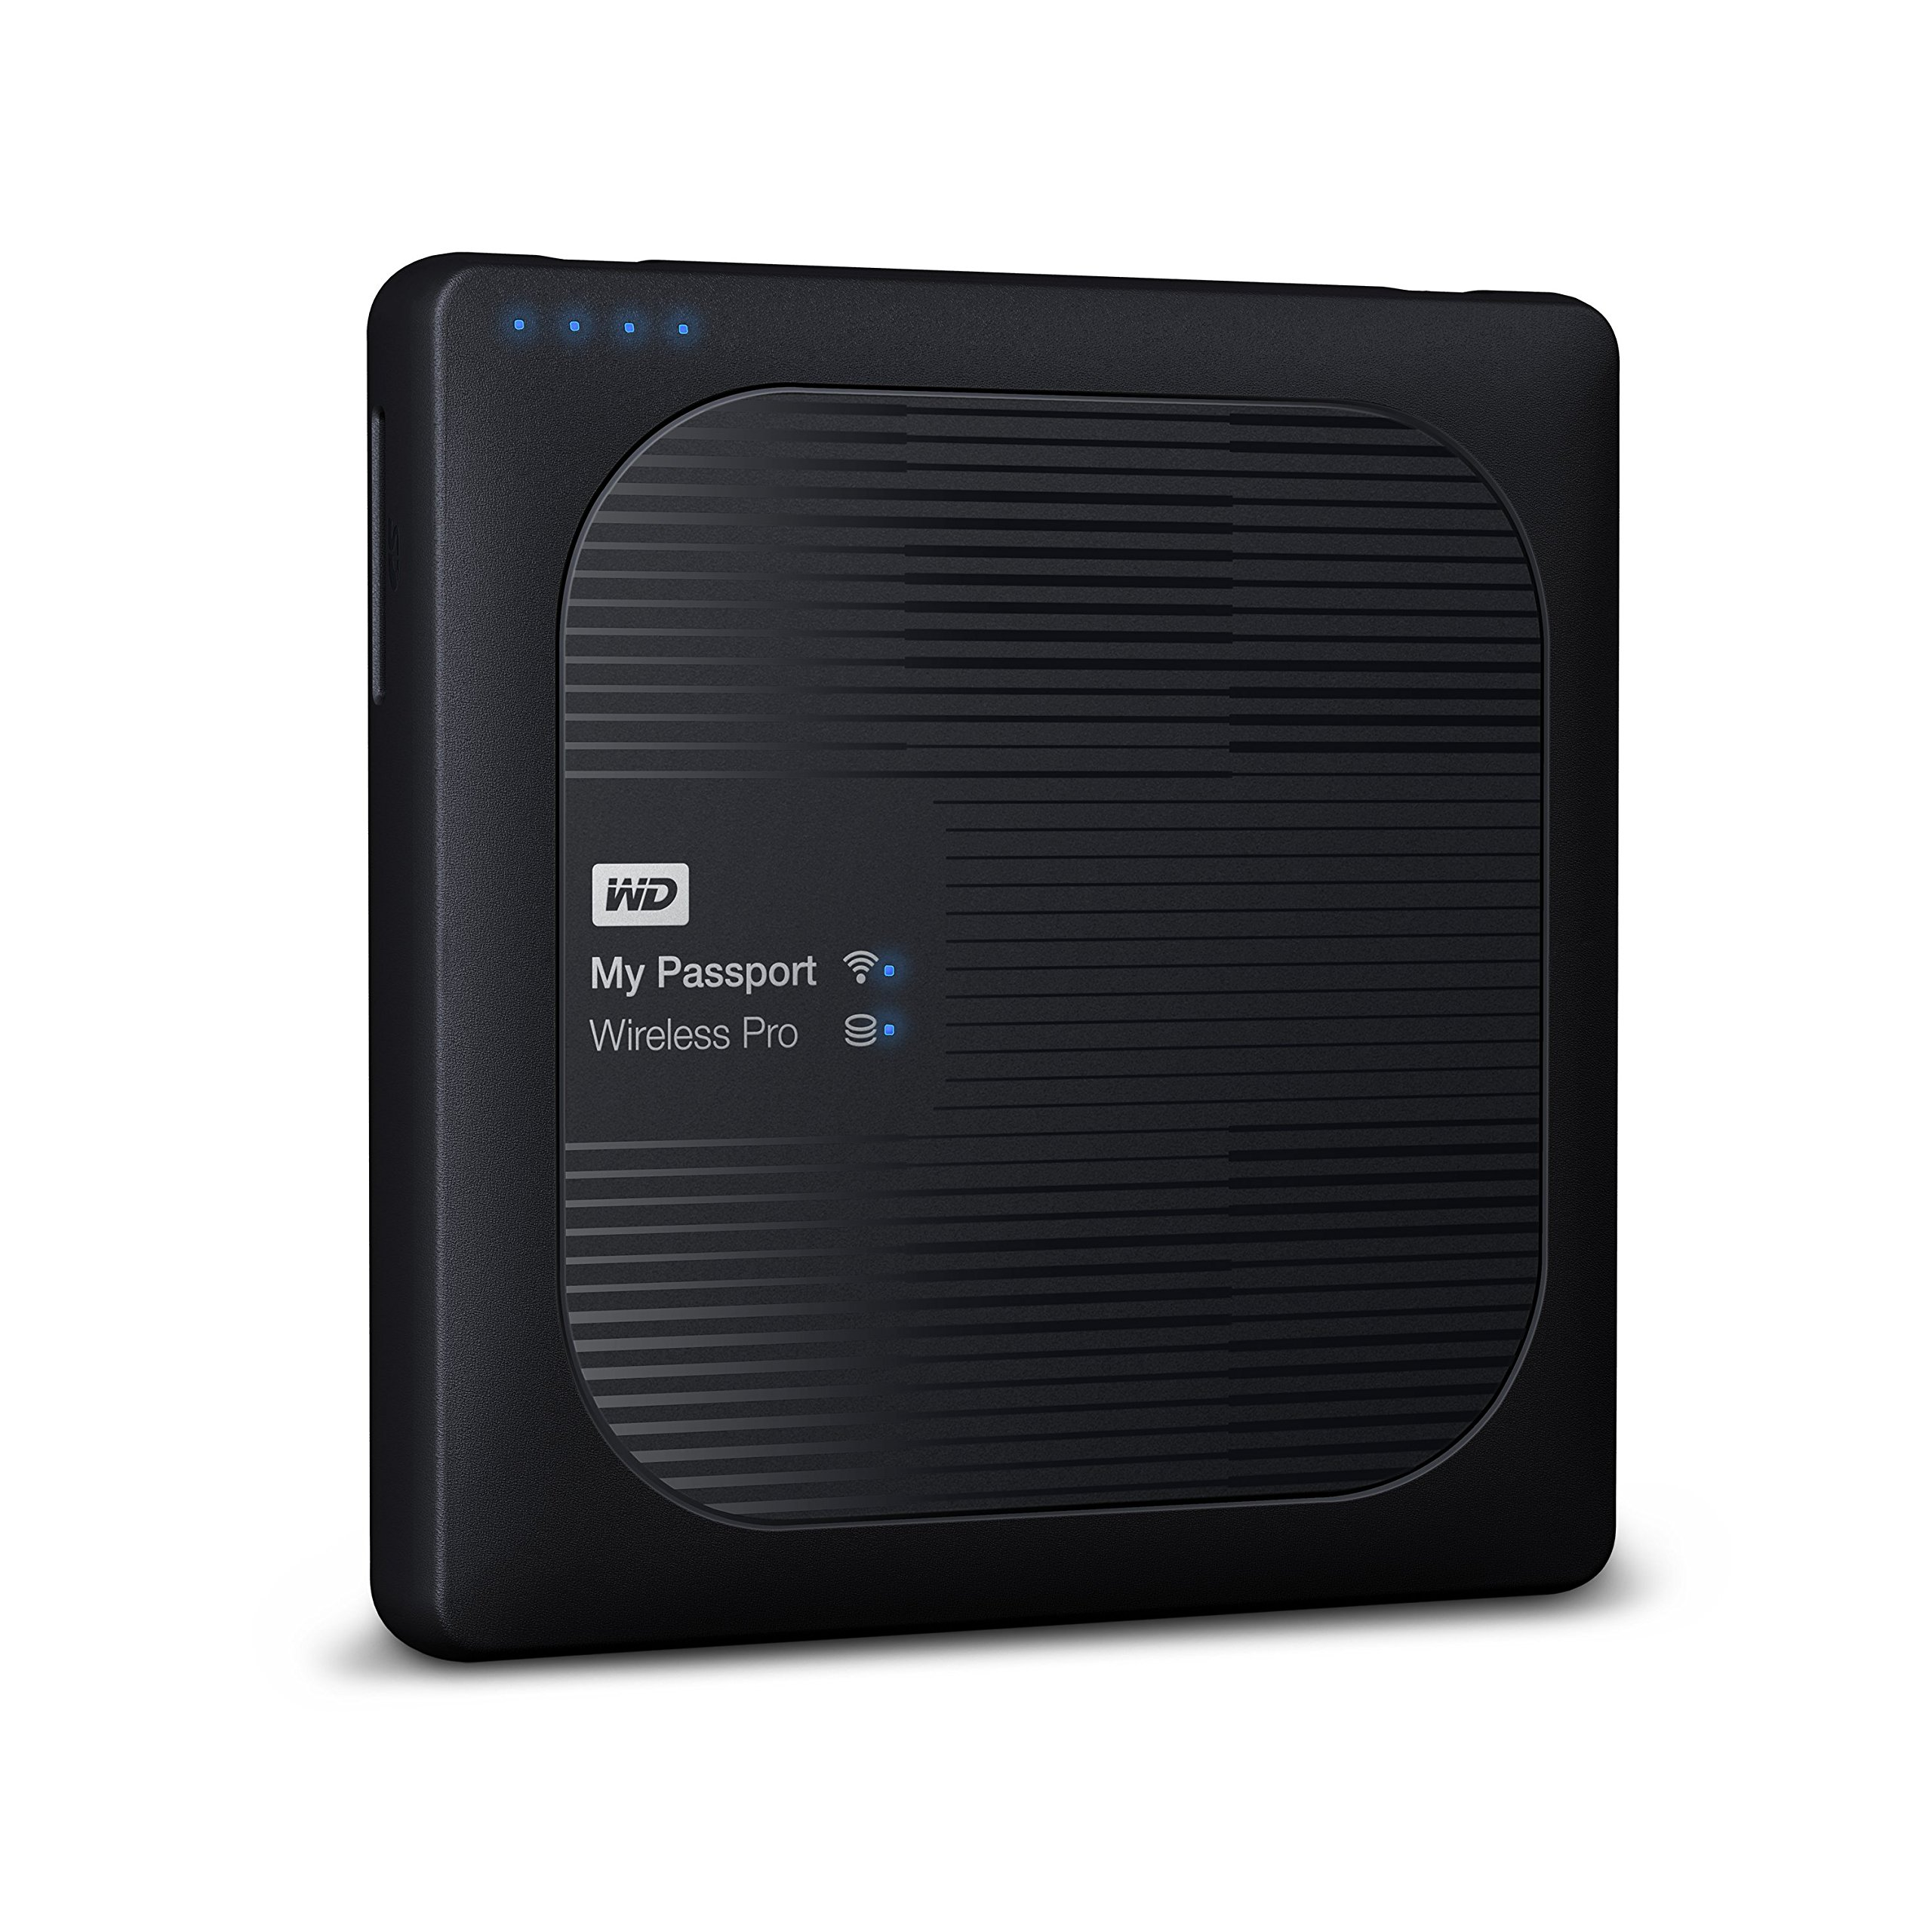 WD 3TB My Passport Wireless Pro Portable External Hard Drive - WIFI USB 3.0 - WDBSMT0030BBK-NESN by Western Digital